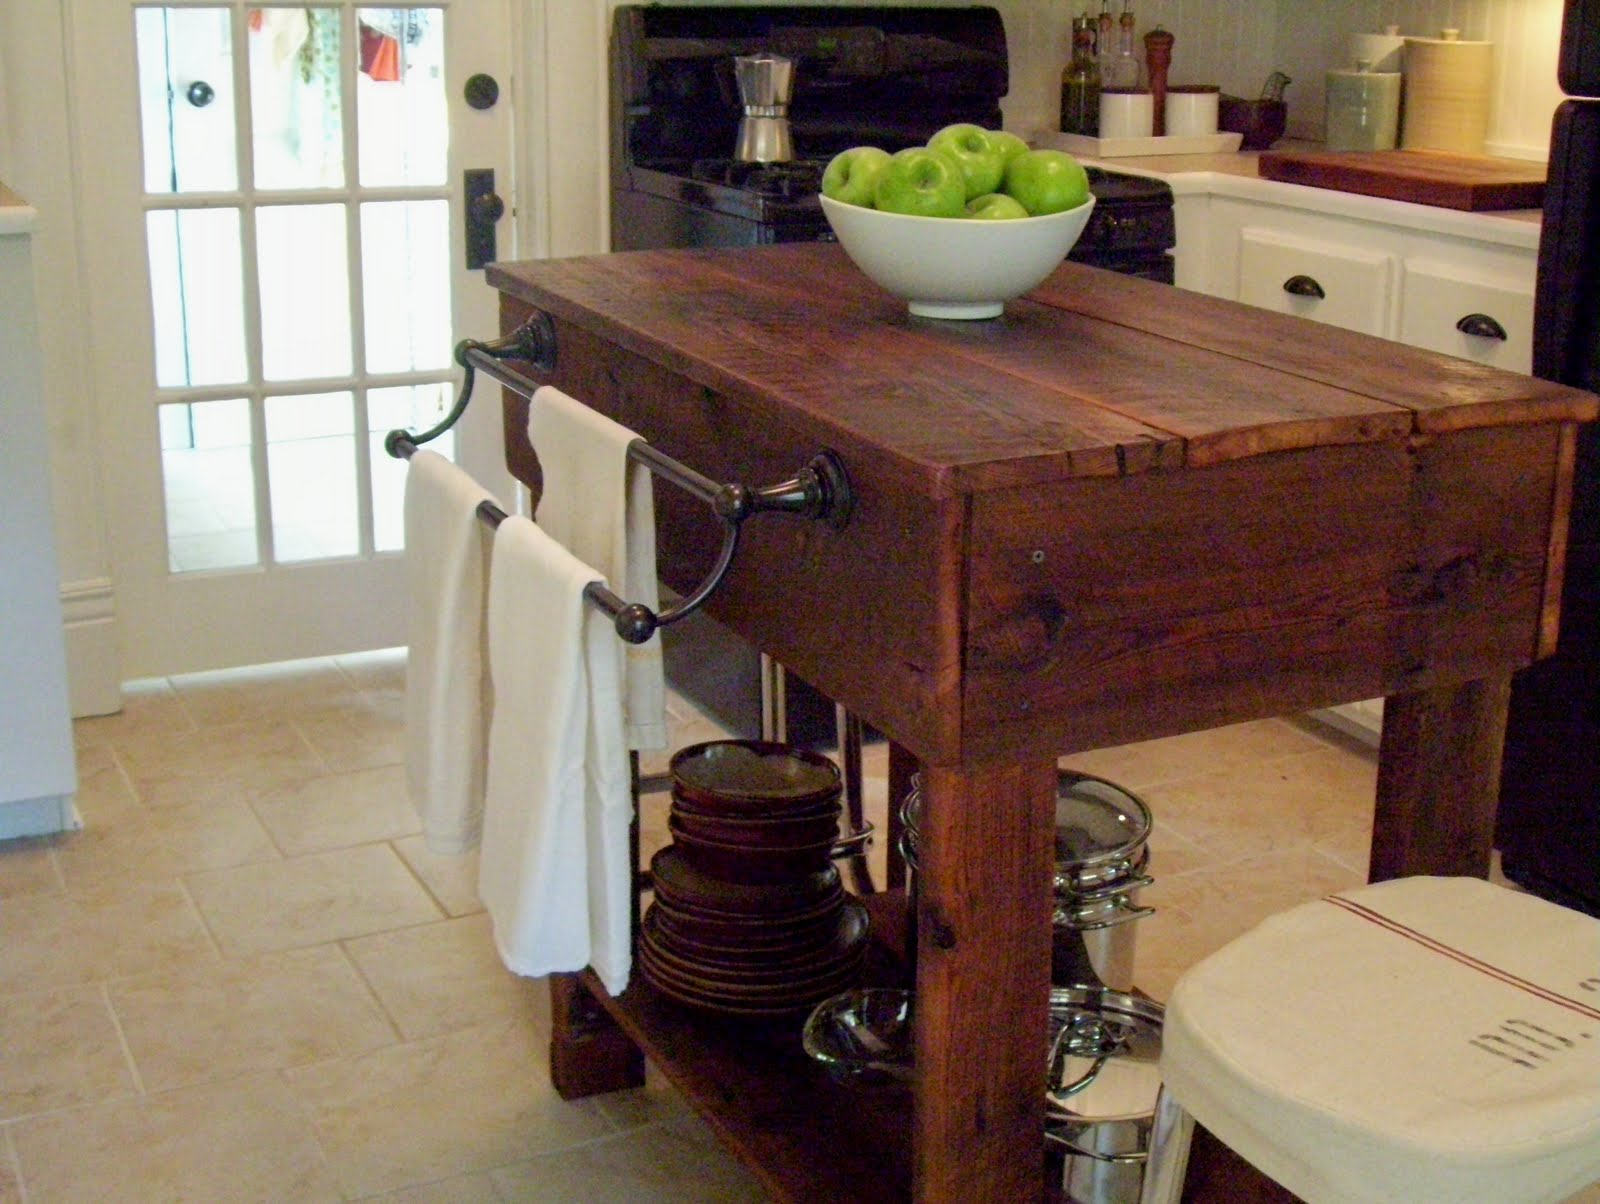 How To Build A Rustic Kitchen Table Islandour vintage home love  How To Build A Rustic Kitchen Table Island. Rustic Kitchen Island. Home Design Ideas